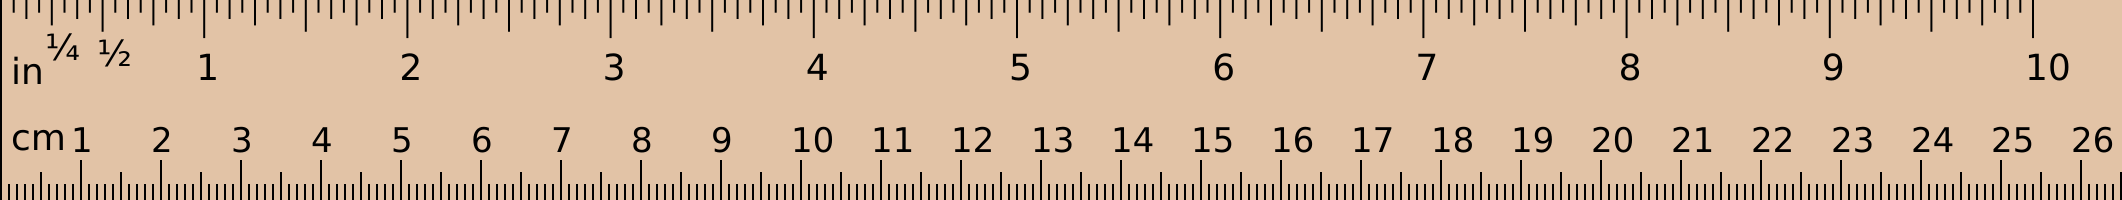 The ruler image